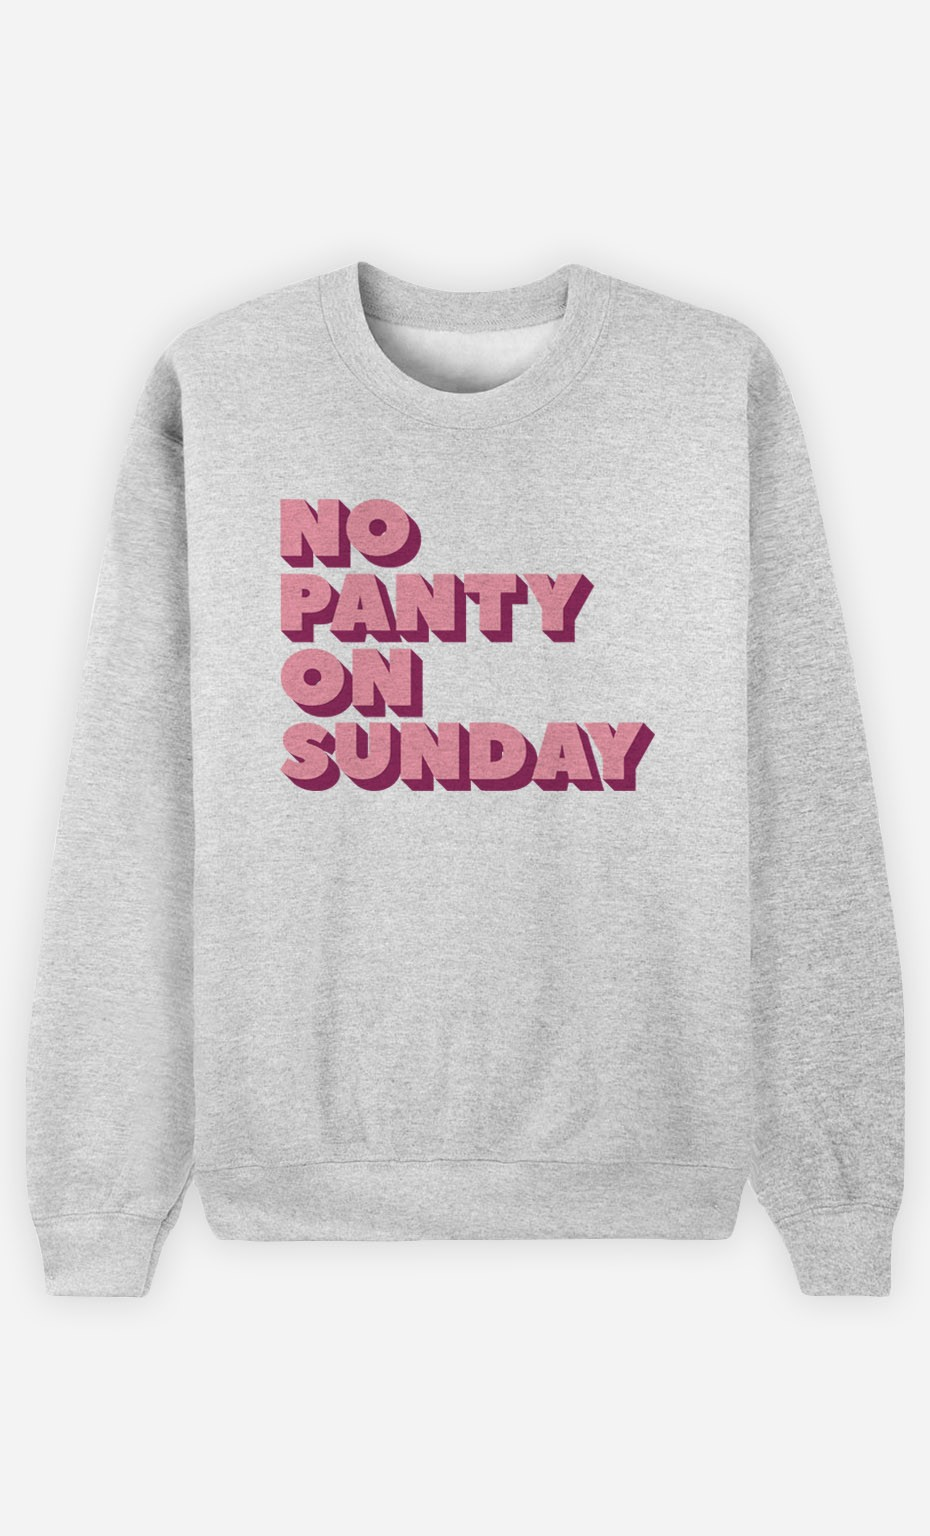 Sweatshirt No Panty on Sunday